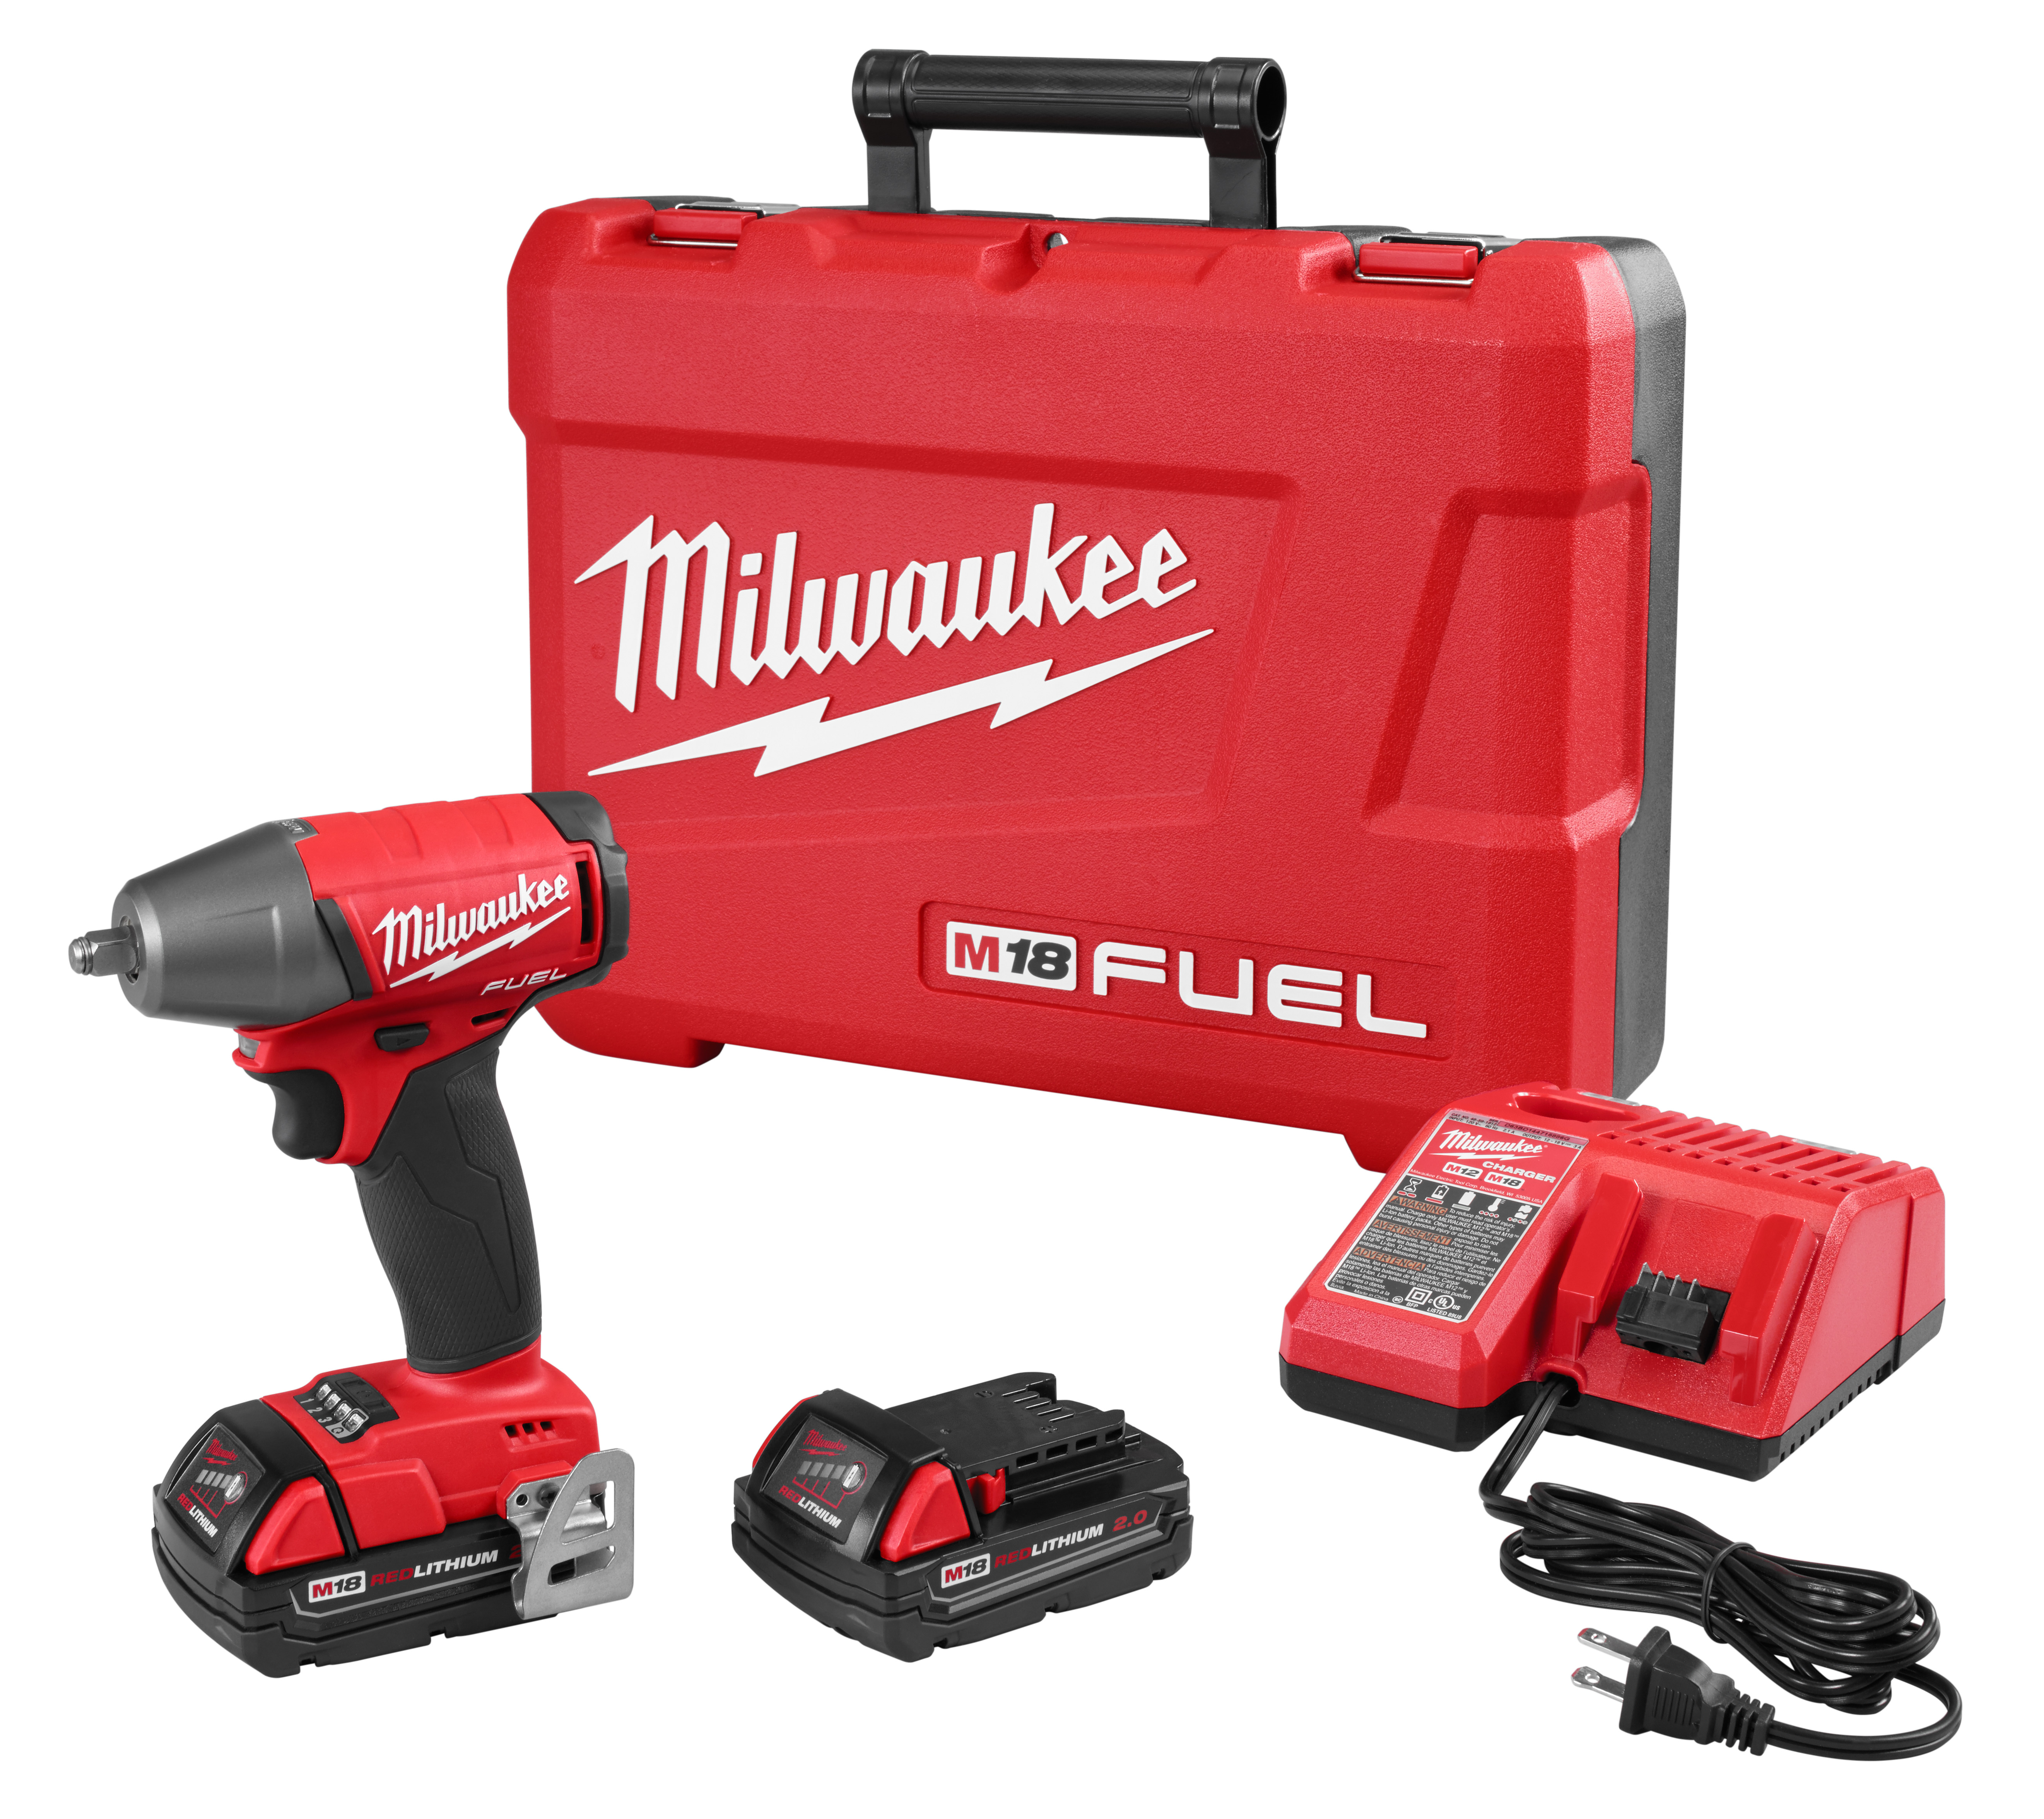 Milwaukee® M18™ FUEL™ 2754-22CT Brushless Compact Impact Wrench Kit, 3/8 in Straight Drive, 0 to 3200 bpm, 220 ft-lb Torque, 18 VDC, 5.9 in OAL